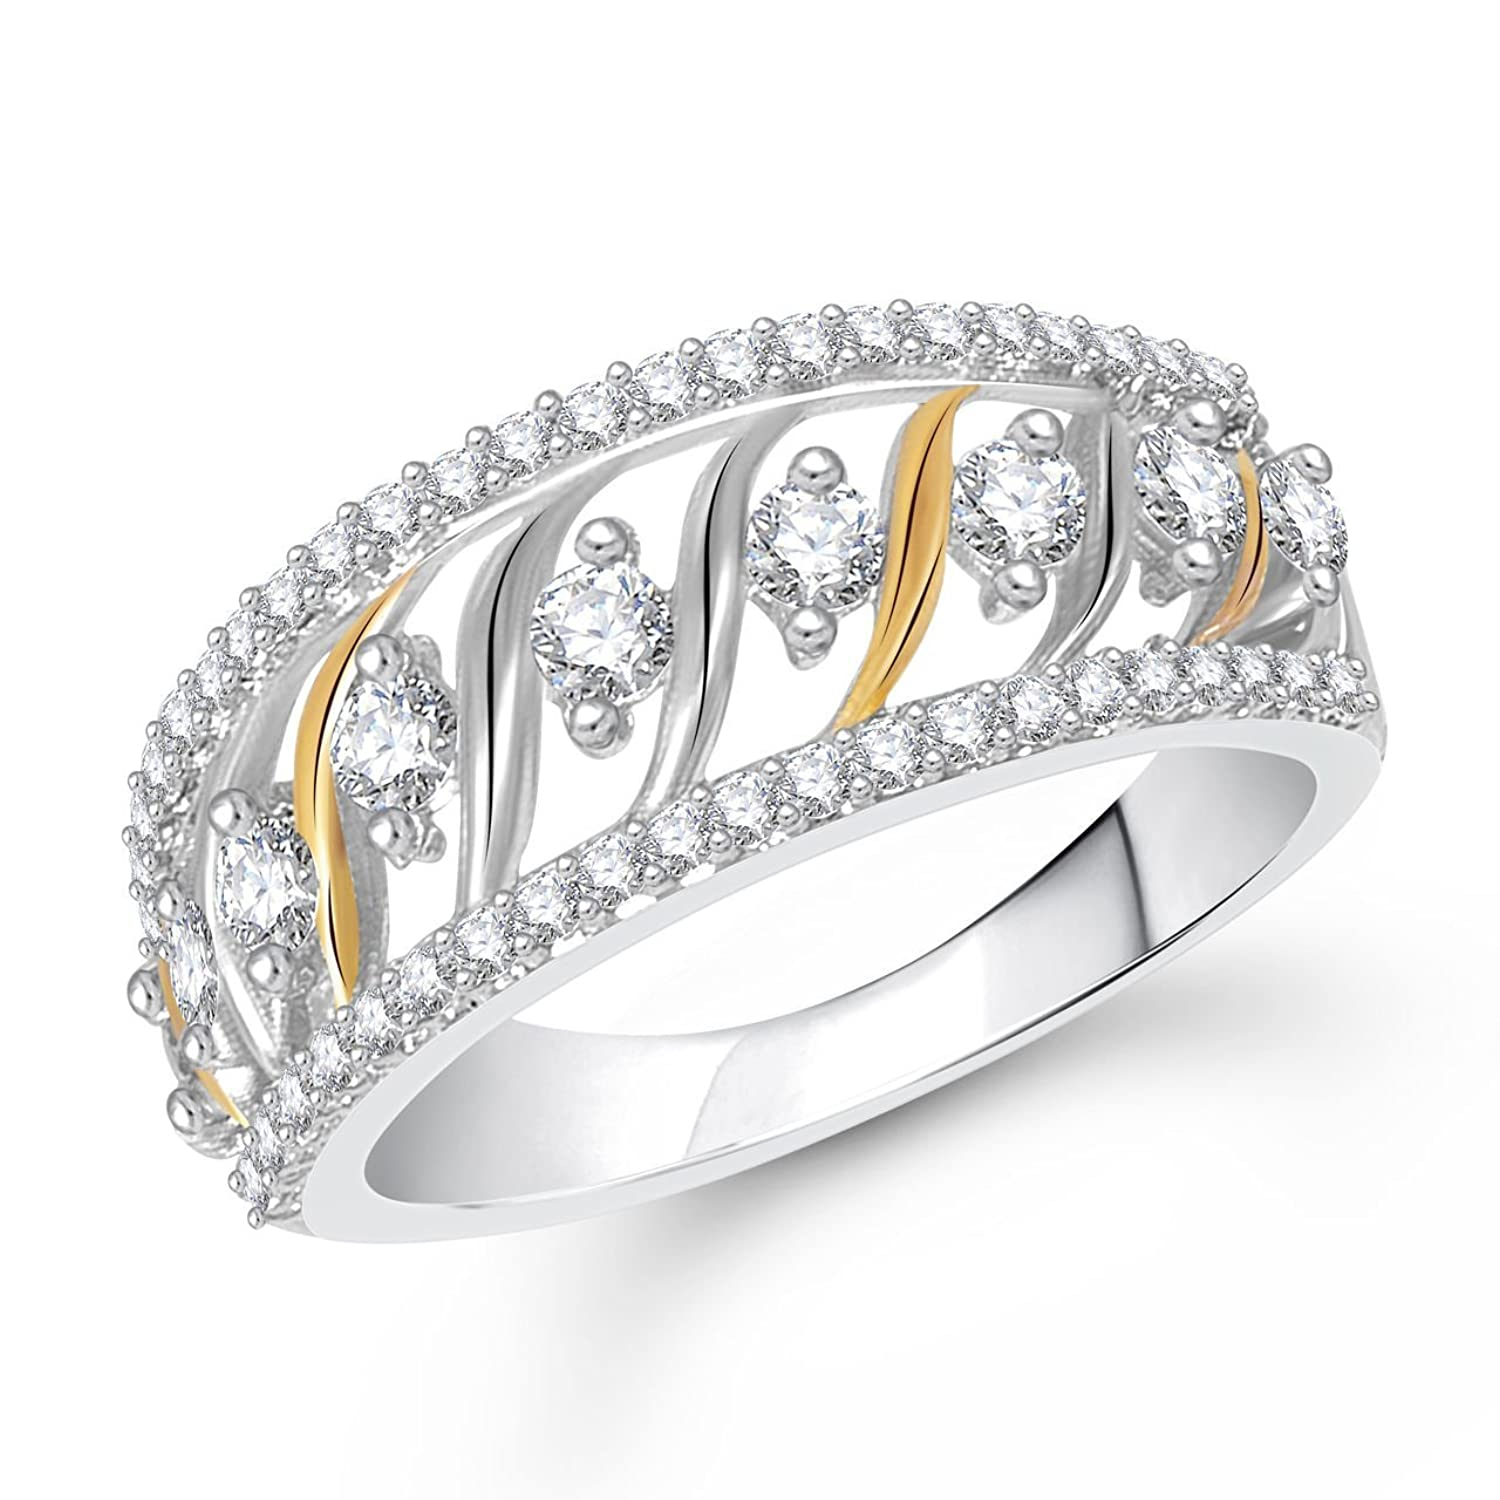 artelle rings is gold your to bespoke color around designs ring halo from now coming back wedding yellow since or want original diamond the was white way and other perhaps you blog